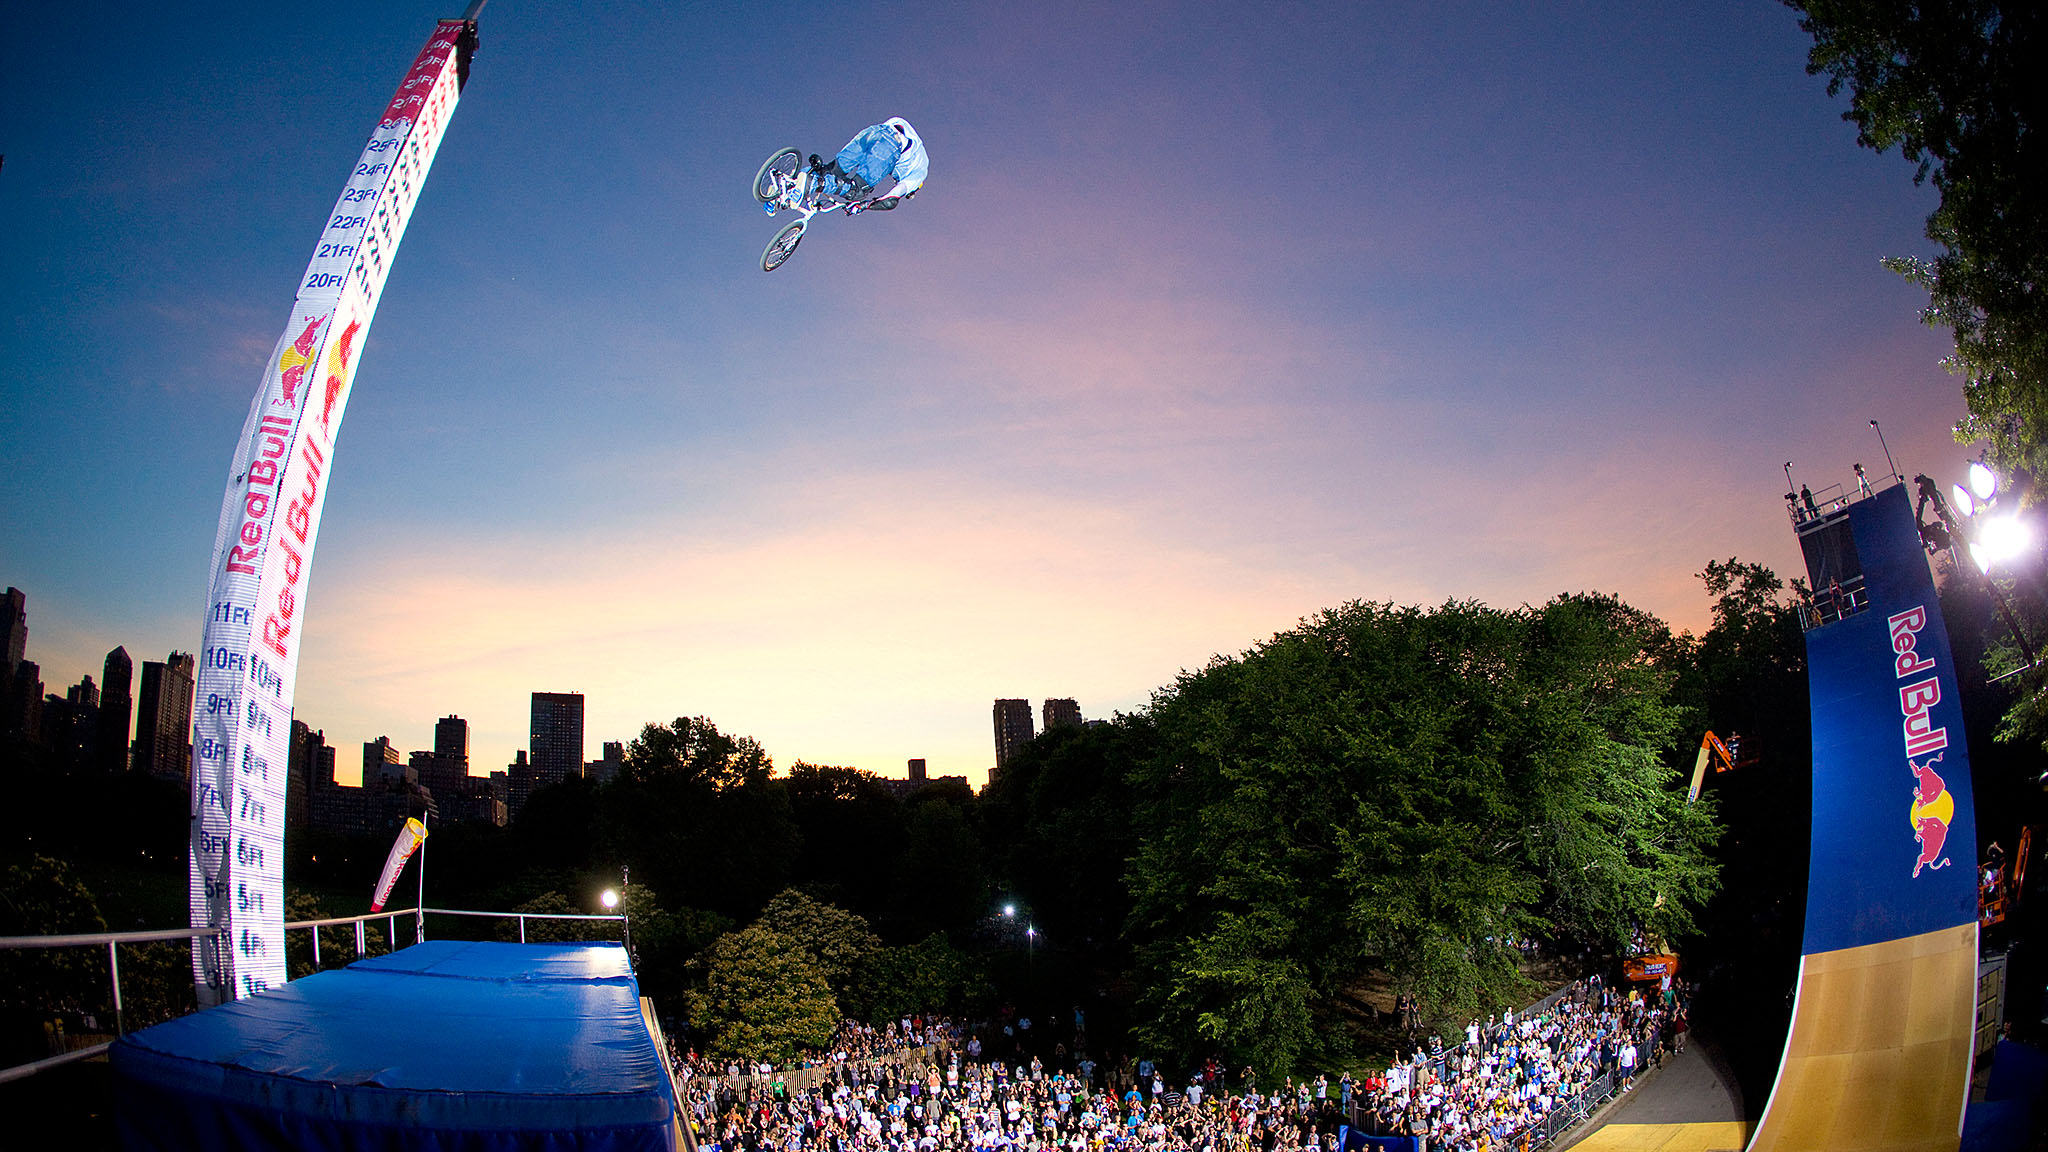 Kevin Robinson, who retired from competition in 2013, setting the 27-foot high-air record.